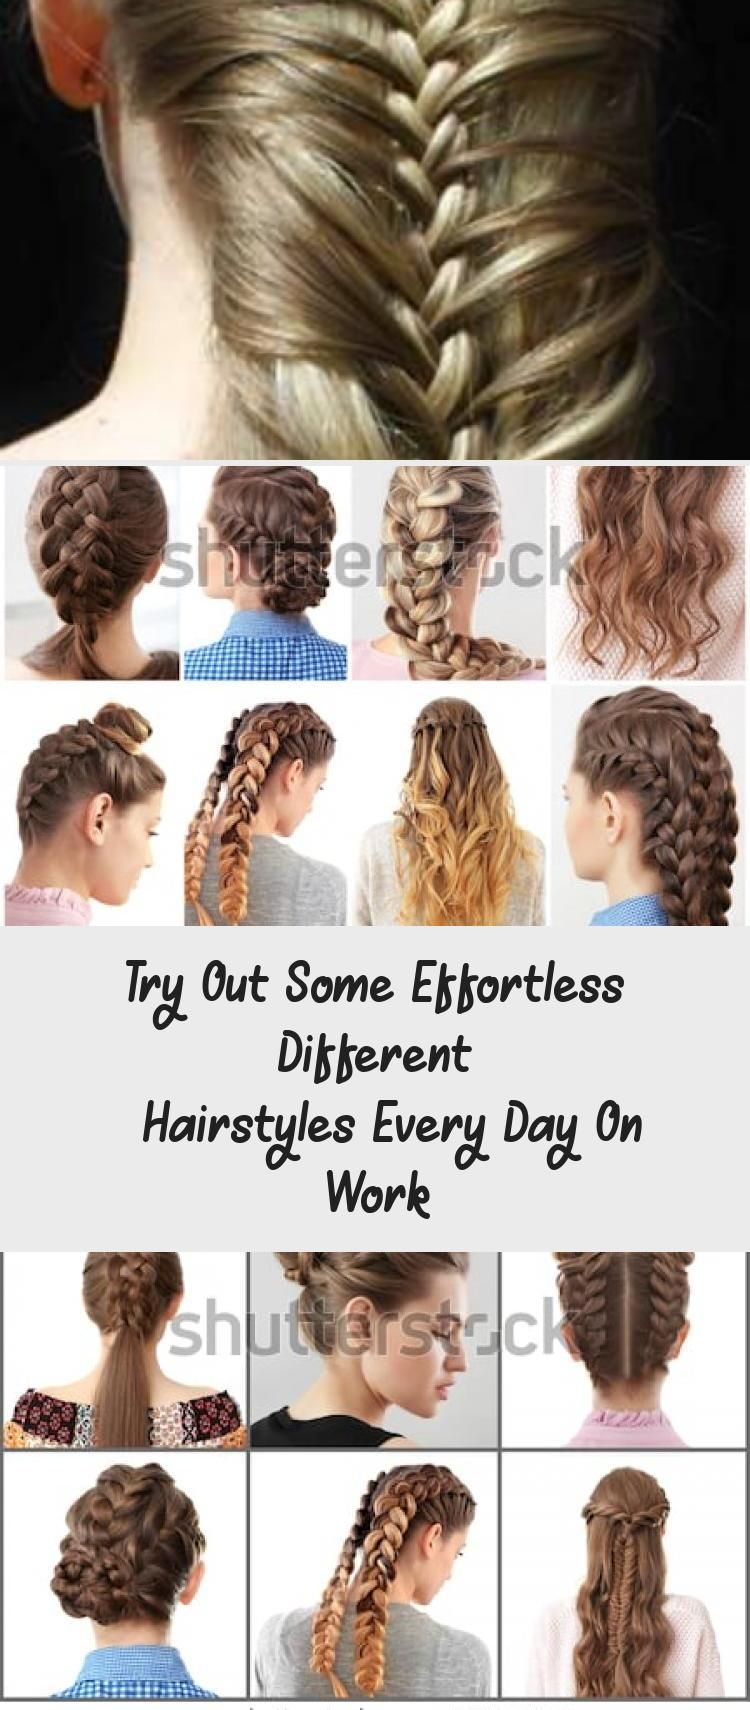 Try Out Some Effortless Different Hairstyles Every Day On Work 7 Easy Everyday Hairstyles For Each In 2020 Hair Styles Different Hairstyles Easy Everyday Hairstyles